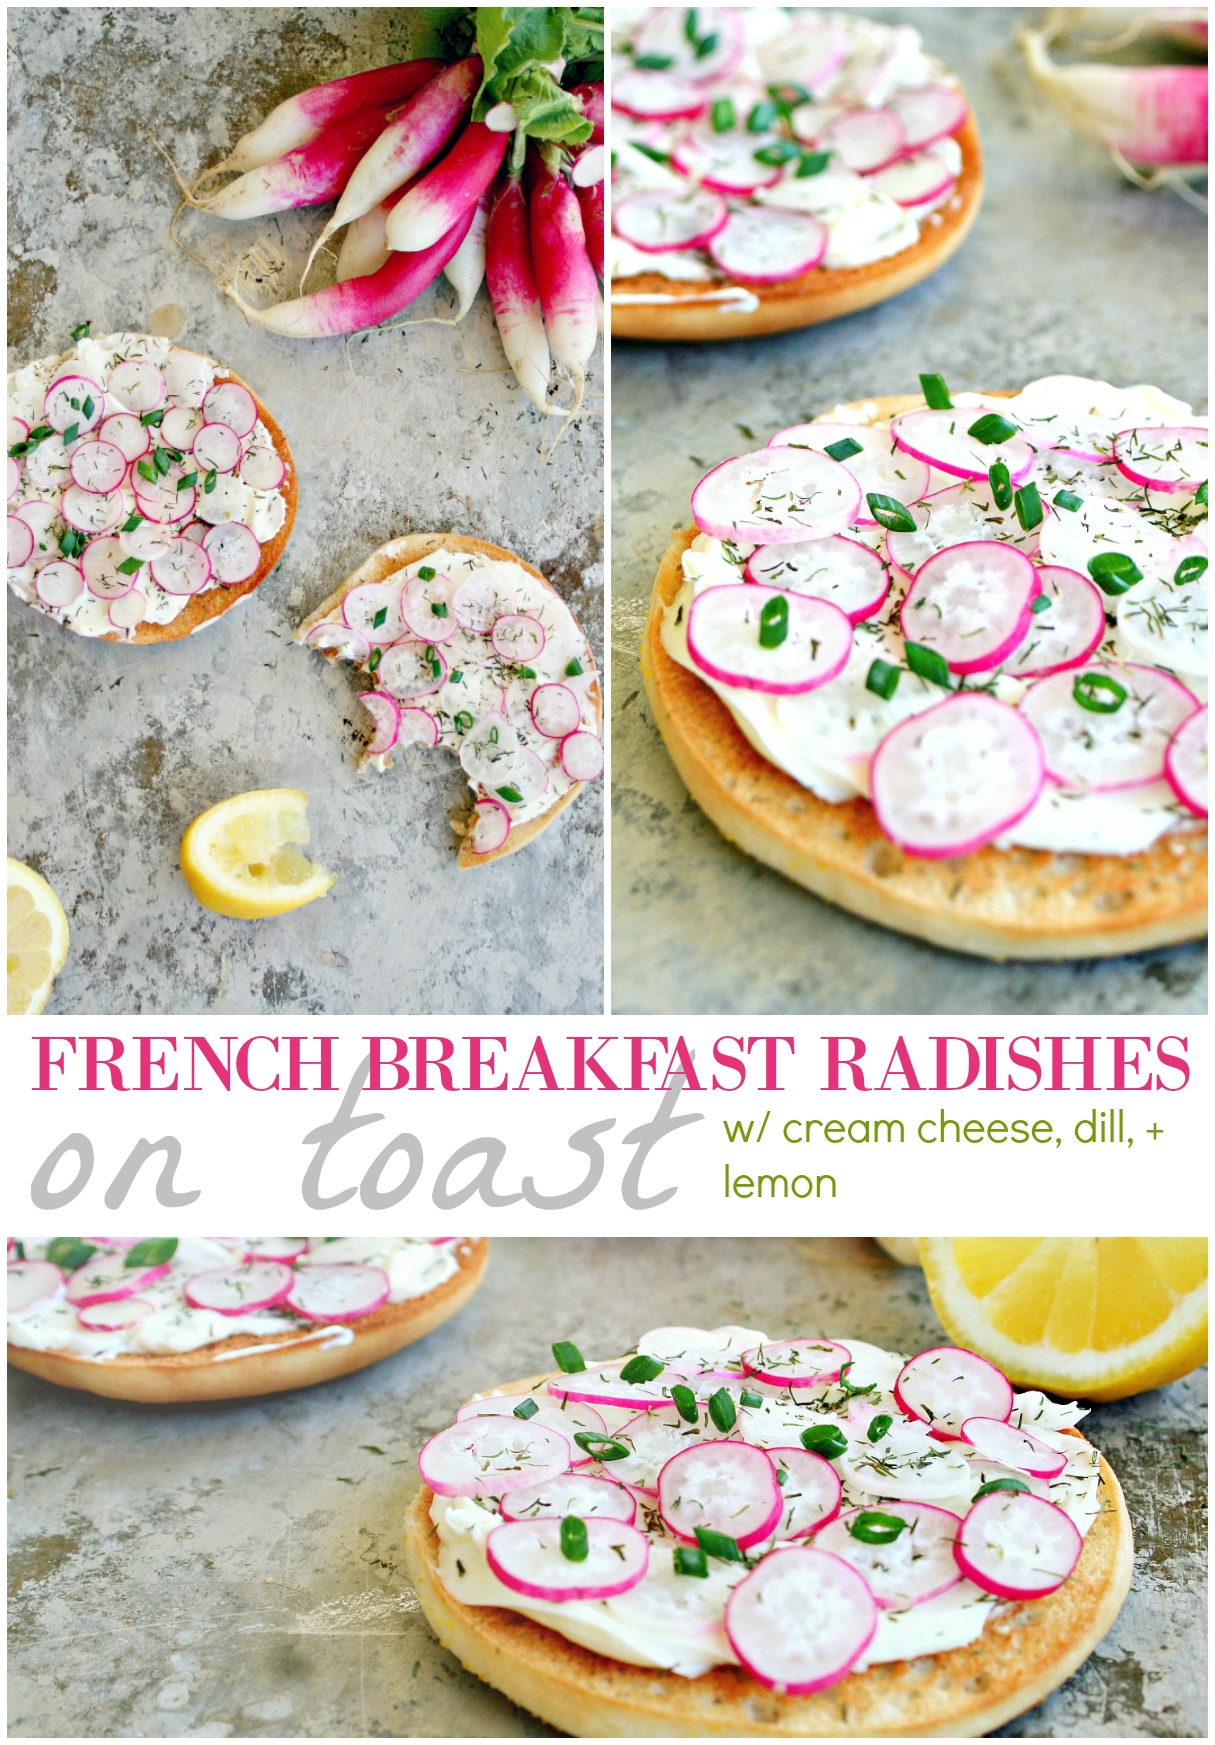 French Breakfast Radishes Pinterest!